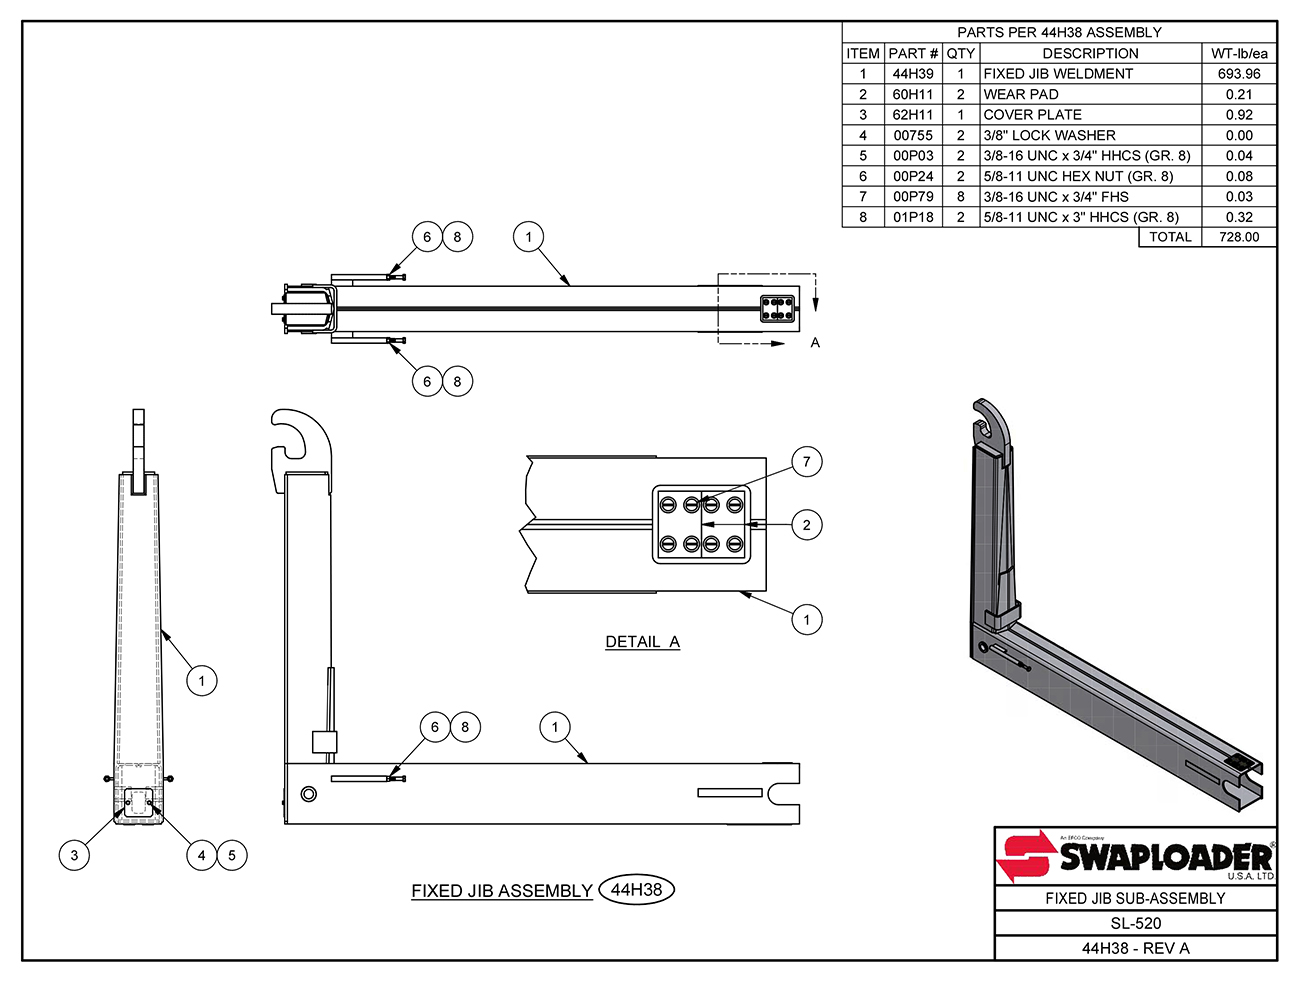 SL-520 Fixed Jib Sub-Assembly Diagram